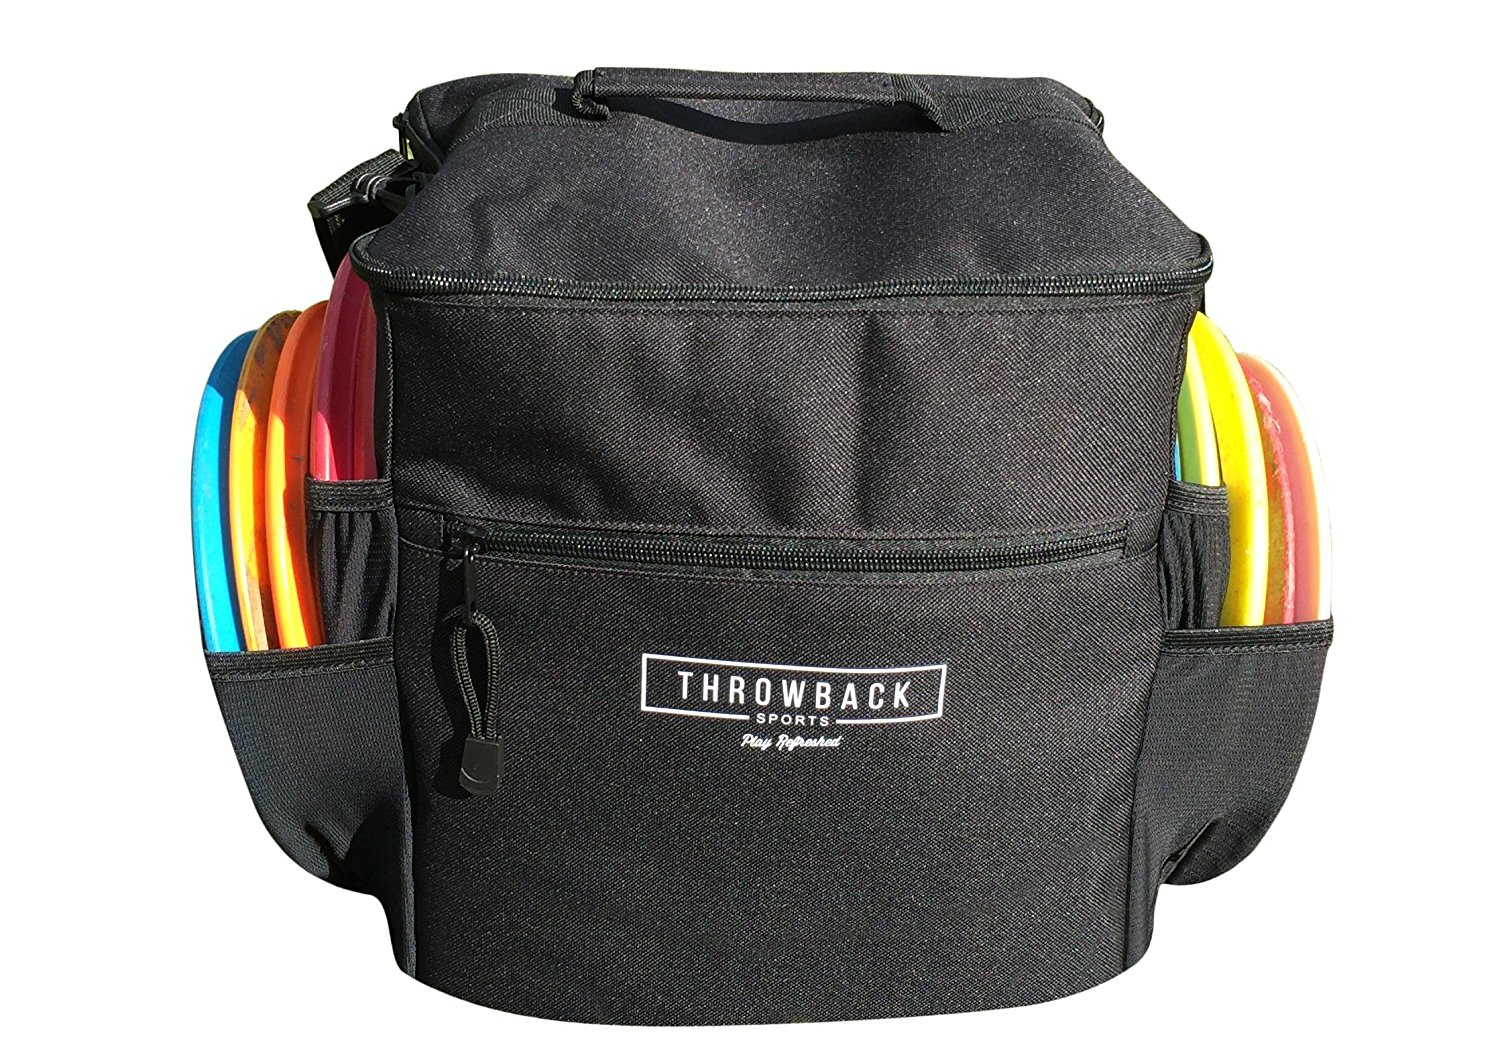 Throwback Mini Sack - Starter Disc Golf Bag with Cooler - Perfect Frisbee Golf Bag for Beginners, Holds 6 - 10 Discs